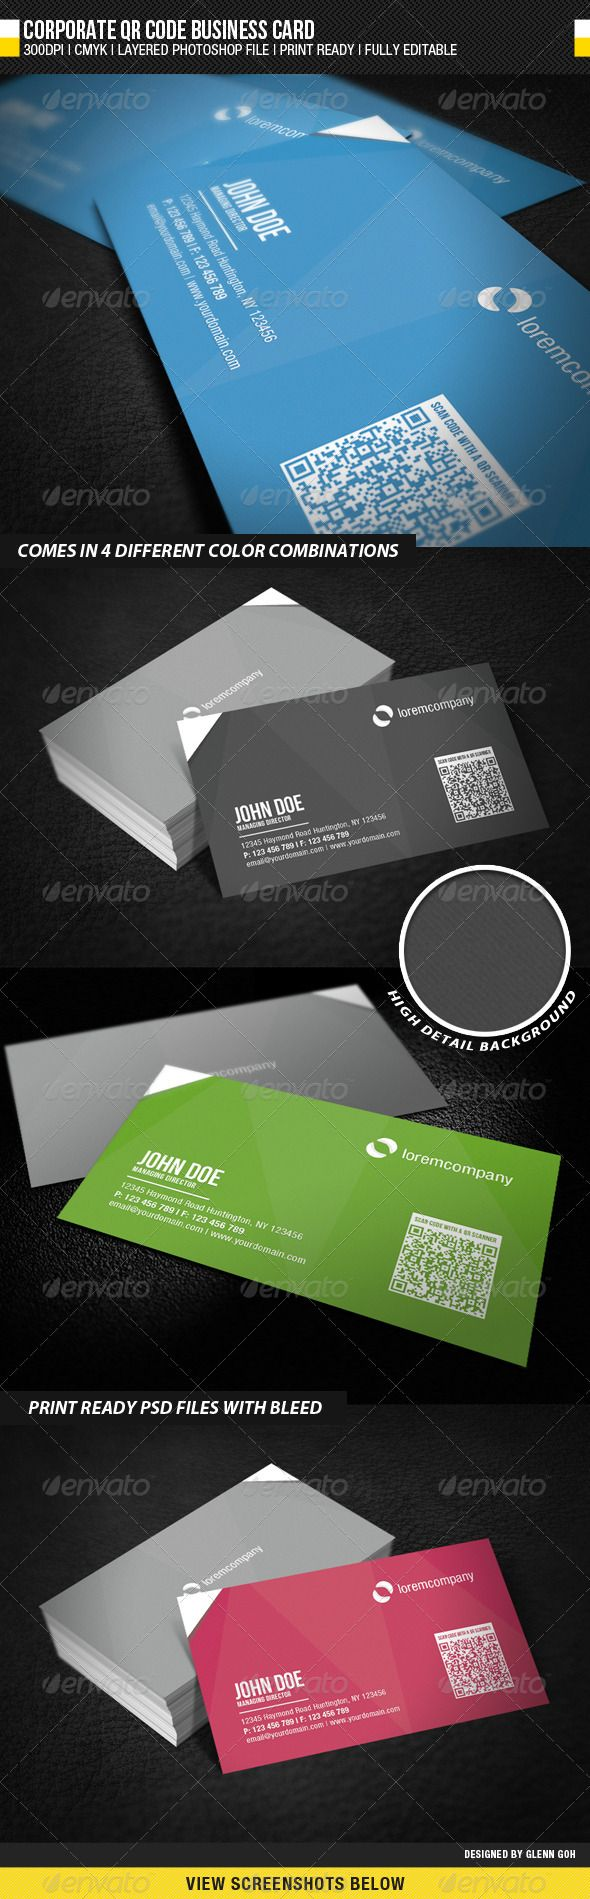 Corporate QR Code Business Card — Photoshop PSD #corporate #professional • Available here → https://graphicriver.net/item/corporate-qr-code-business-card/1954855?ref=pxcr